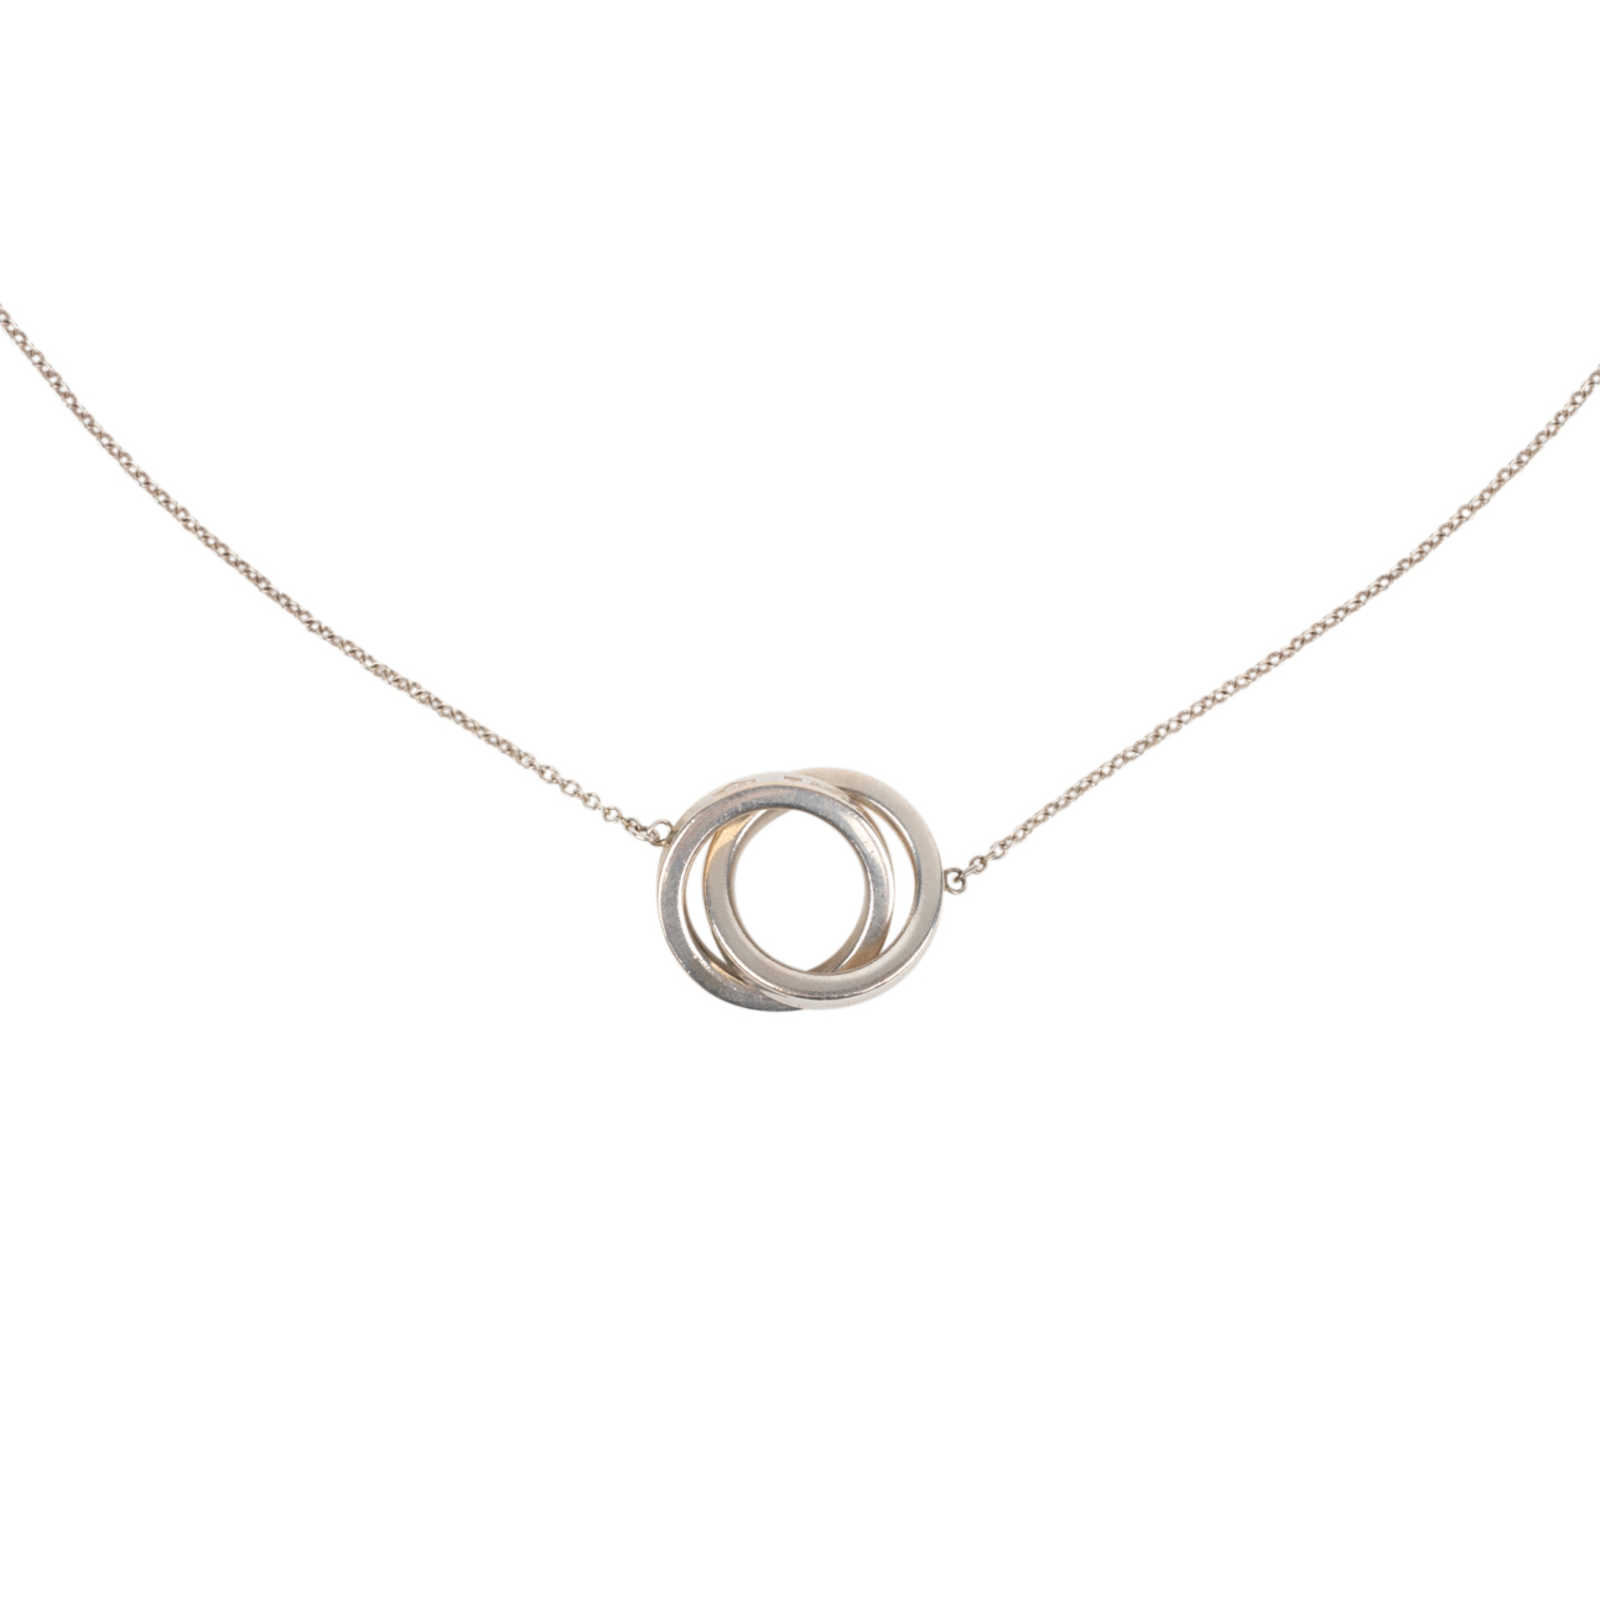 2908ef4af Authentic Second Hand Tiffany & Co Interlocking Circles Pendant  (PSS-563-00003) ...